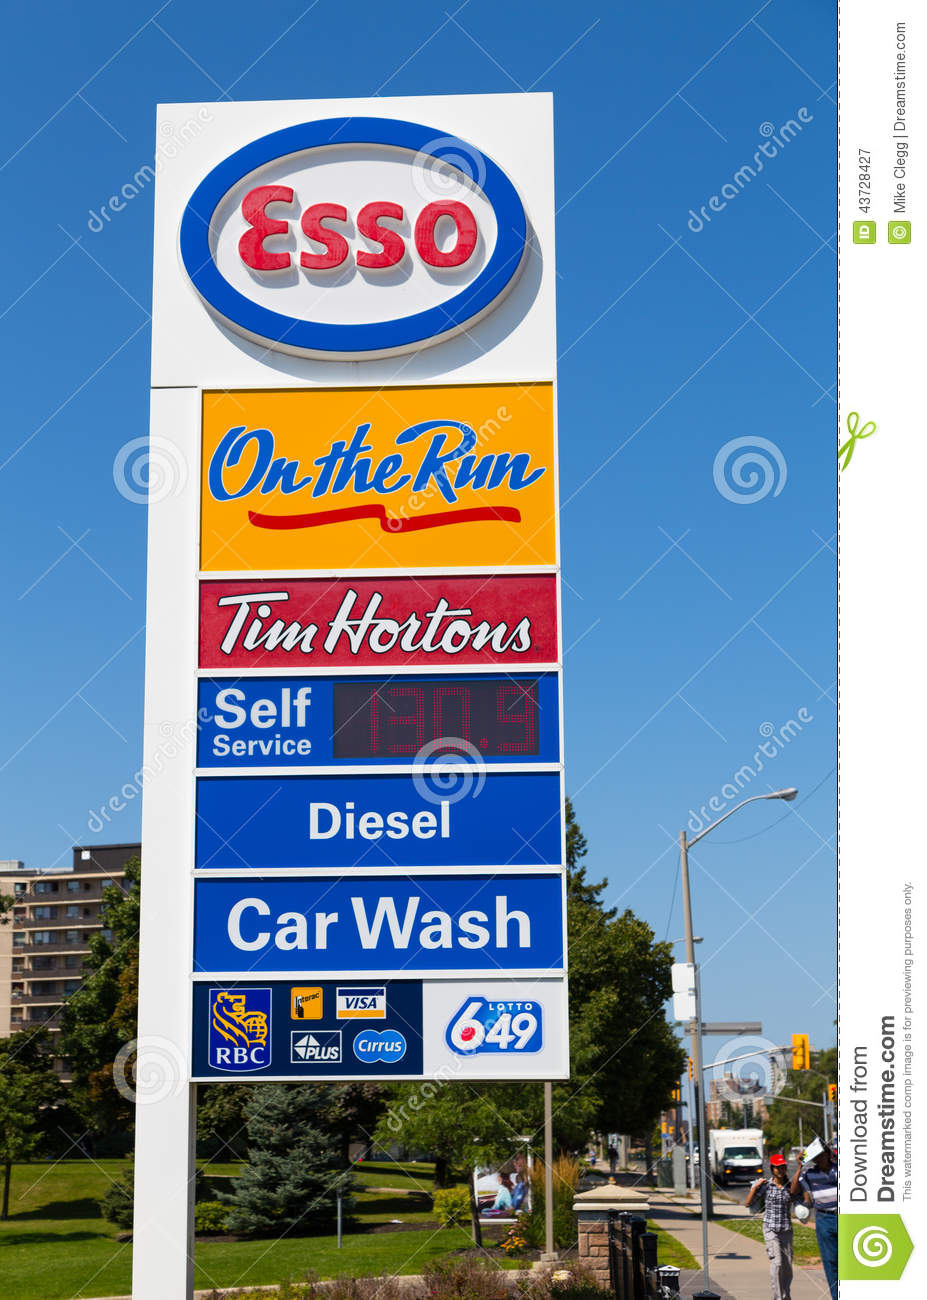 Gas Prices: Esso Gas Prices